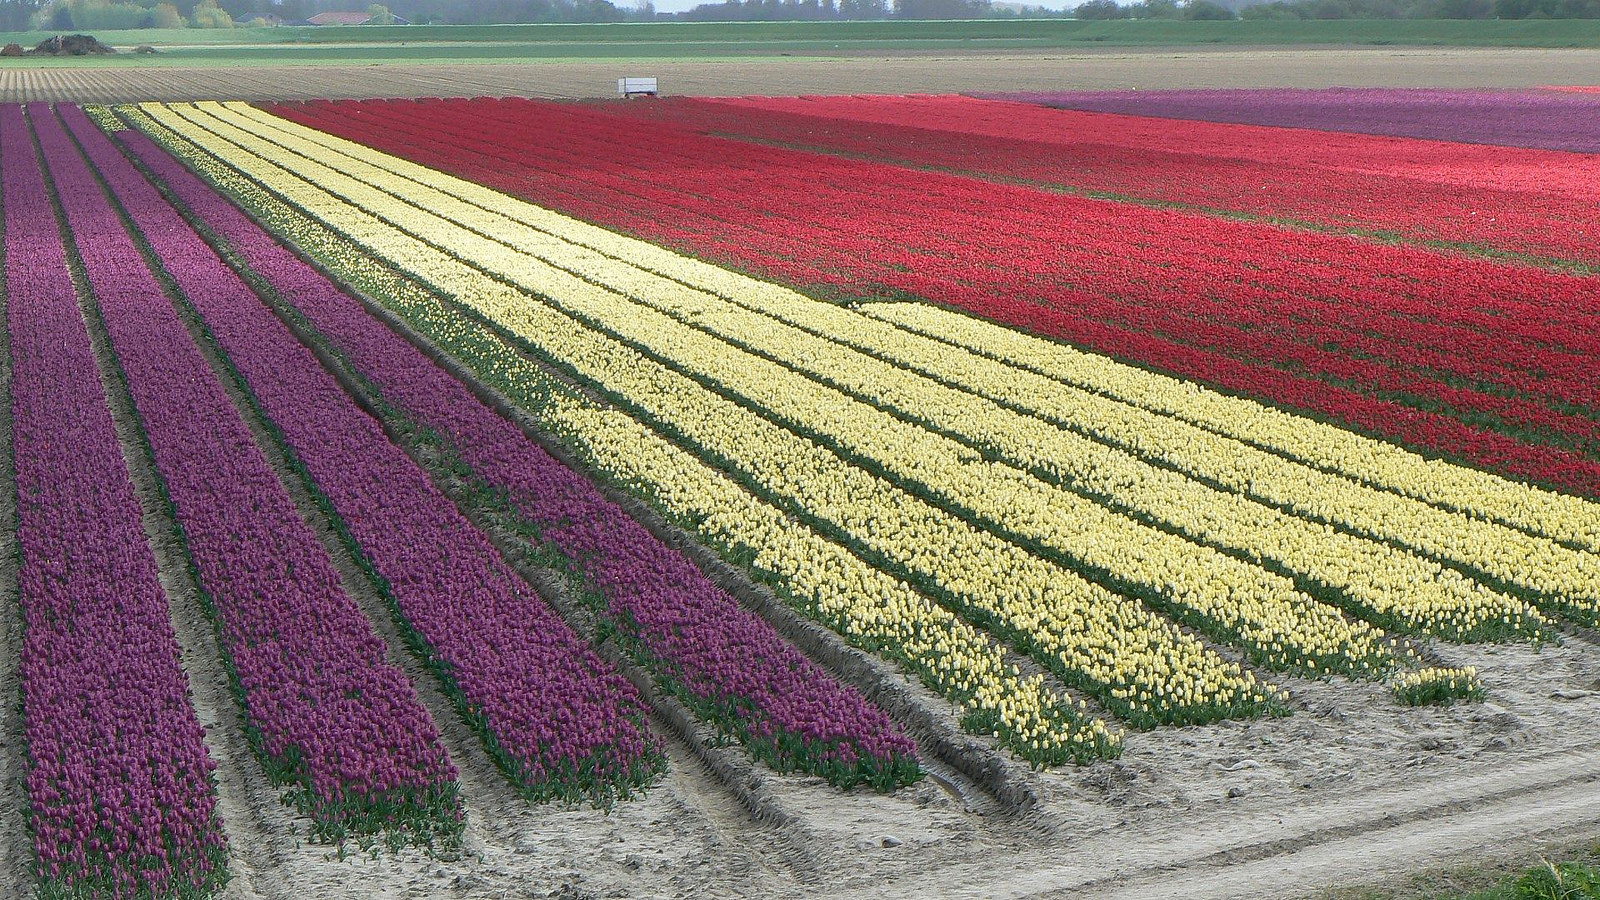 Goeree-Overflakkee, Netherlands - one of the green destinations to visit this year